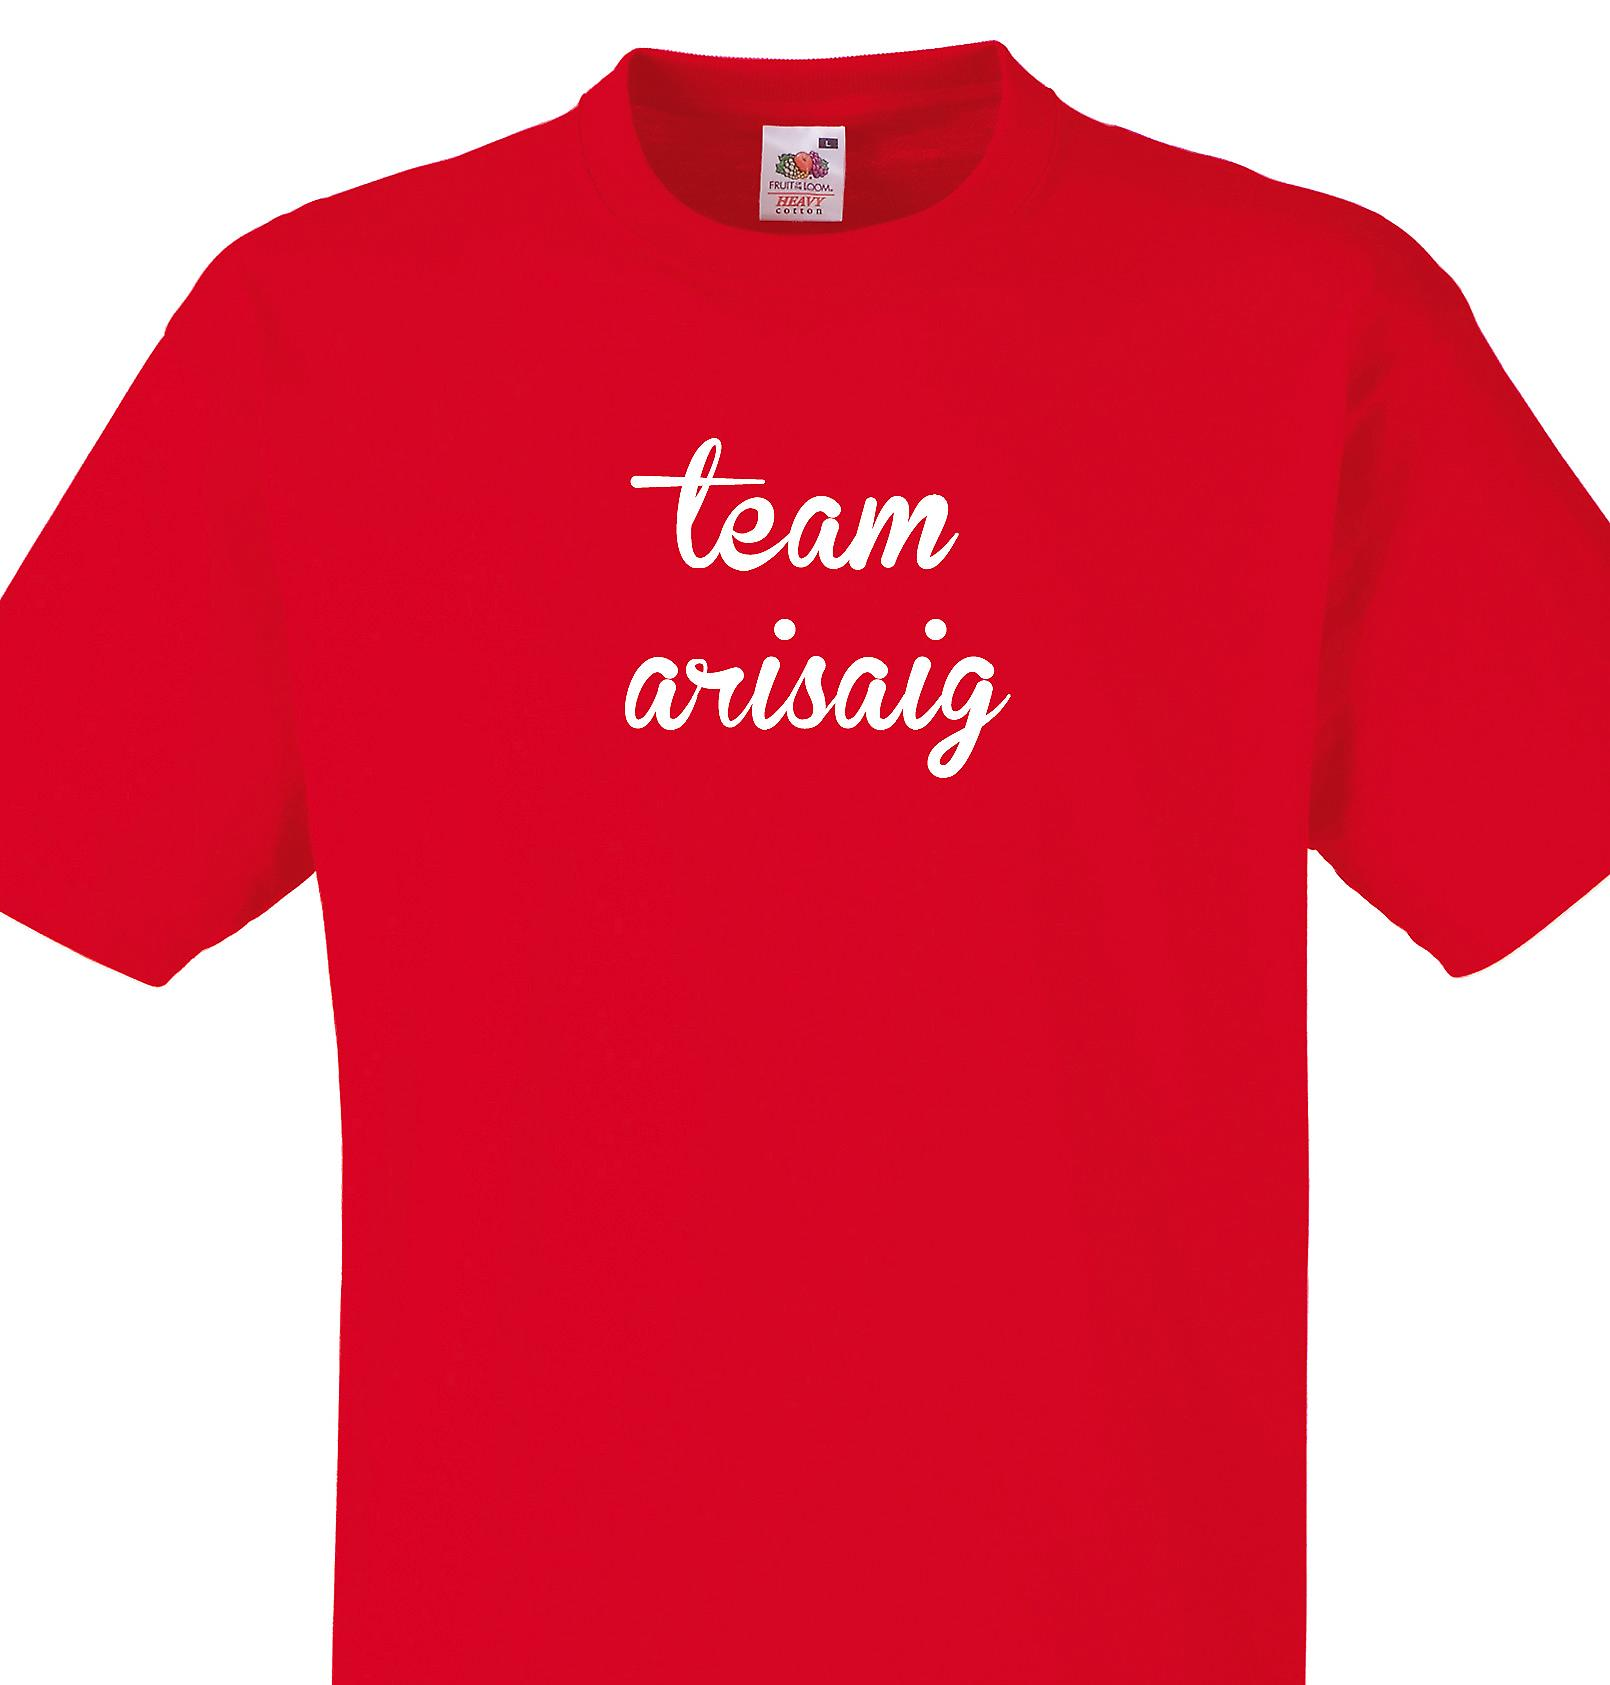 Team Arisaig Red T shirt